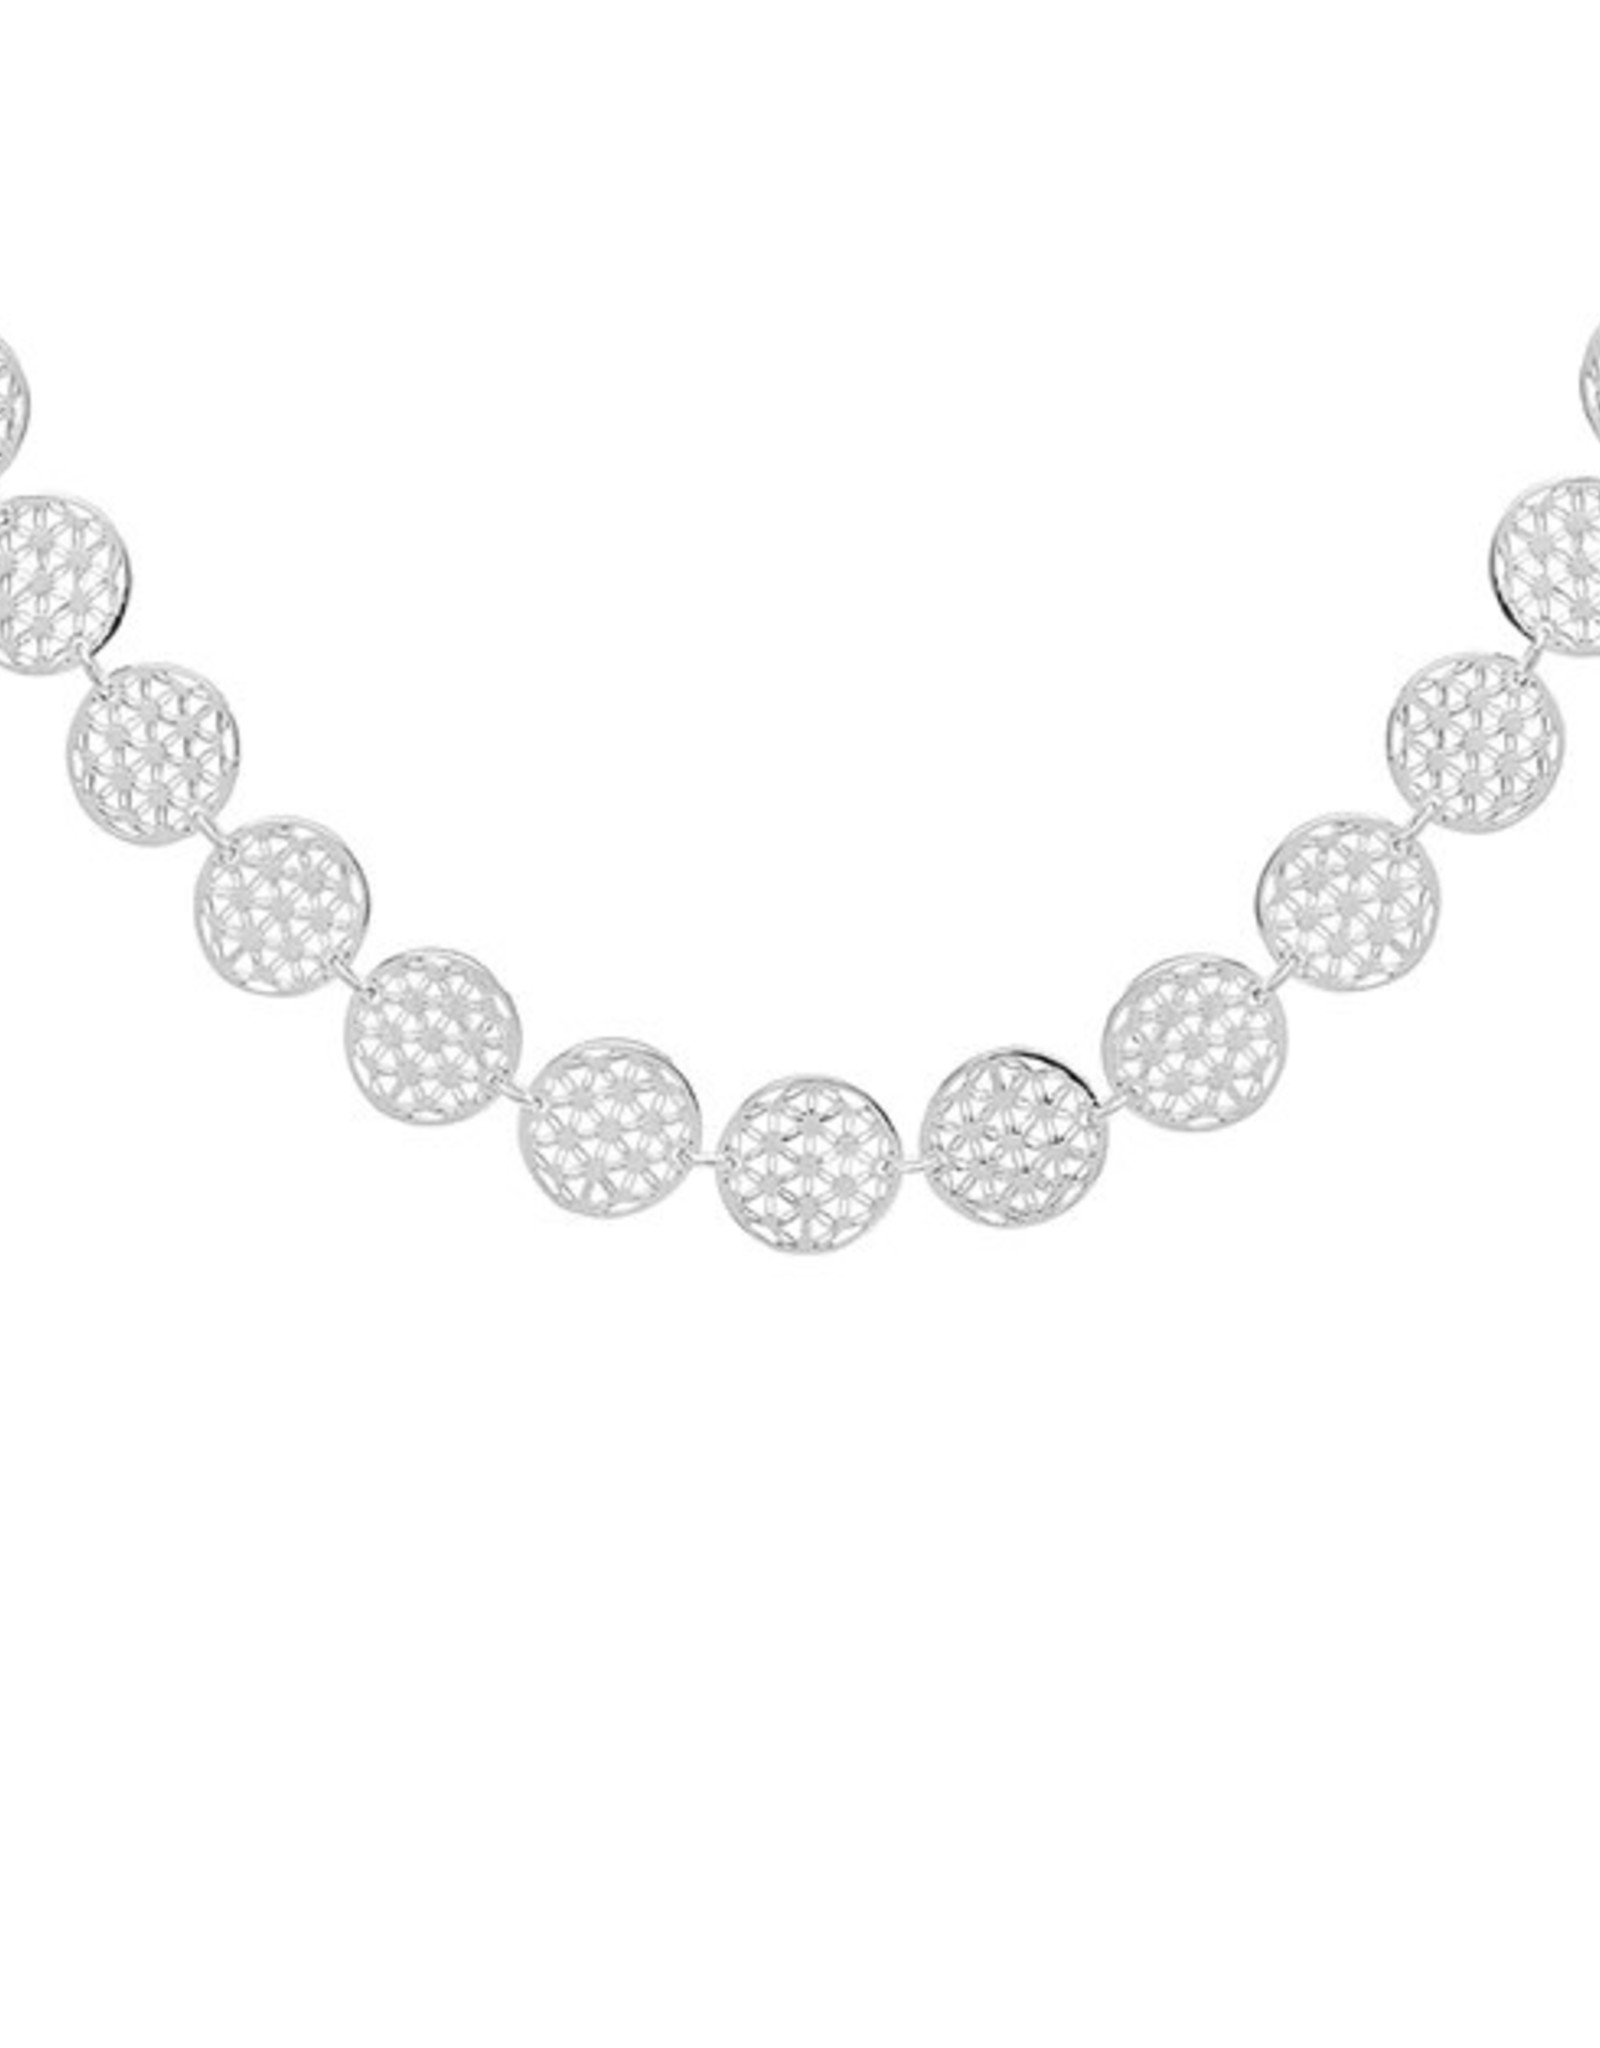 "ANNIE HAAK ""FLOWER OF LIFE"" SILVER LINKED NECKLACE  FROM ANNIE HAAK"